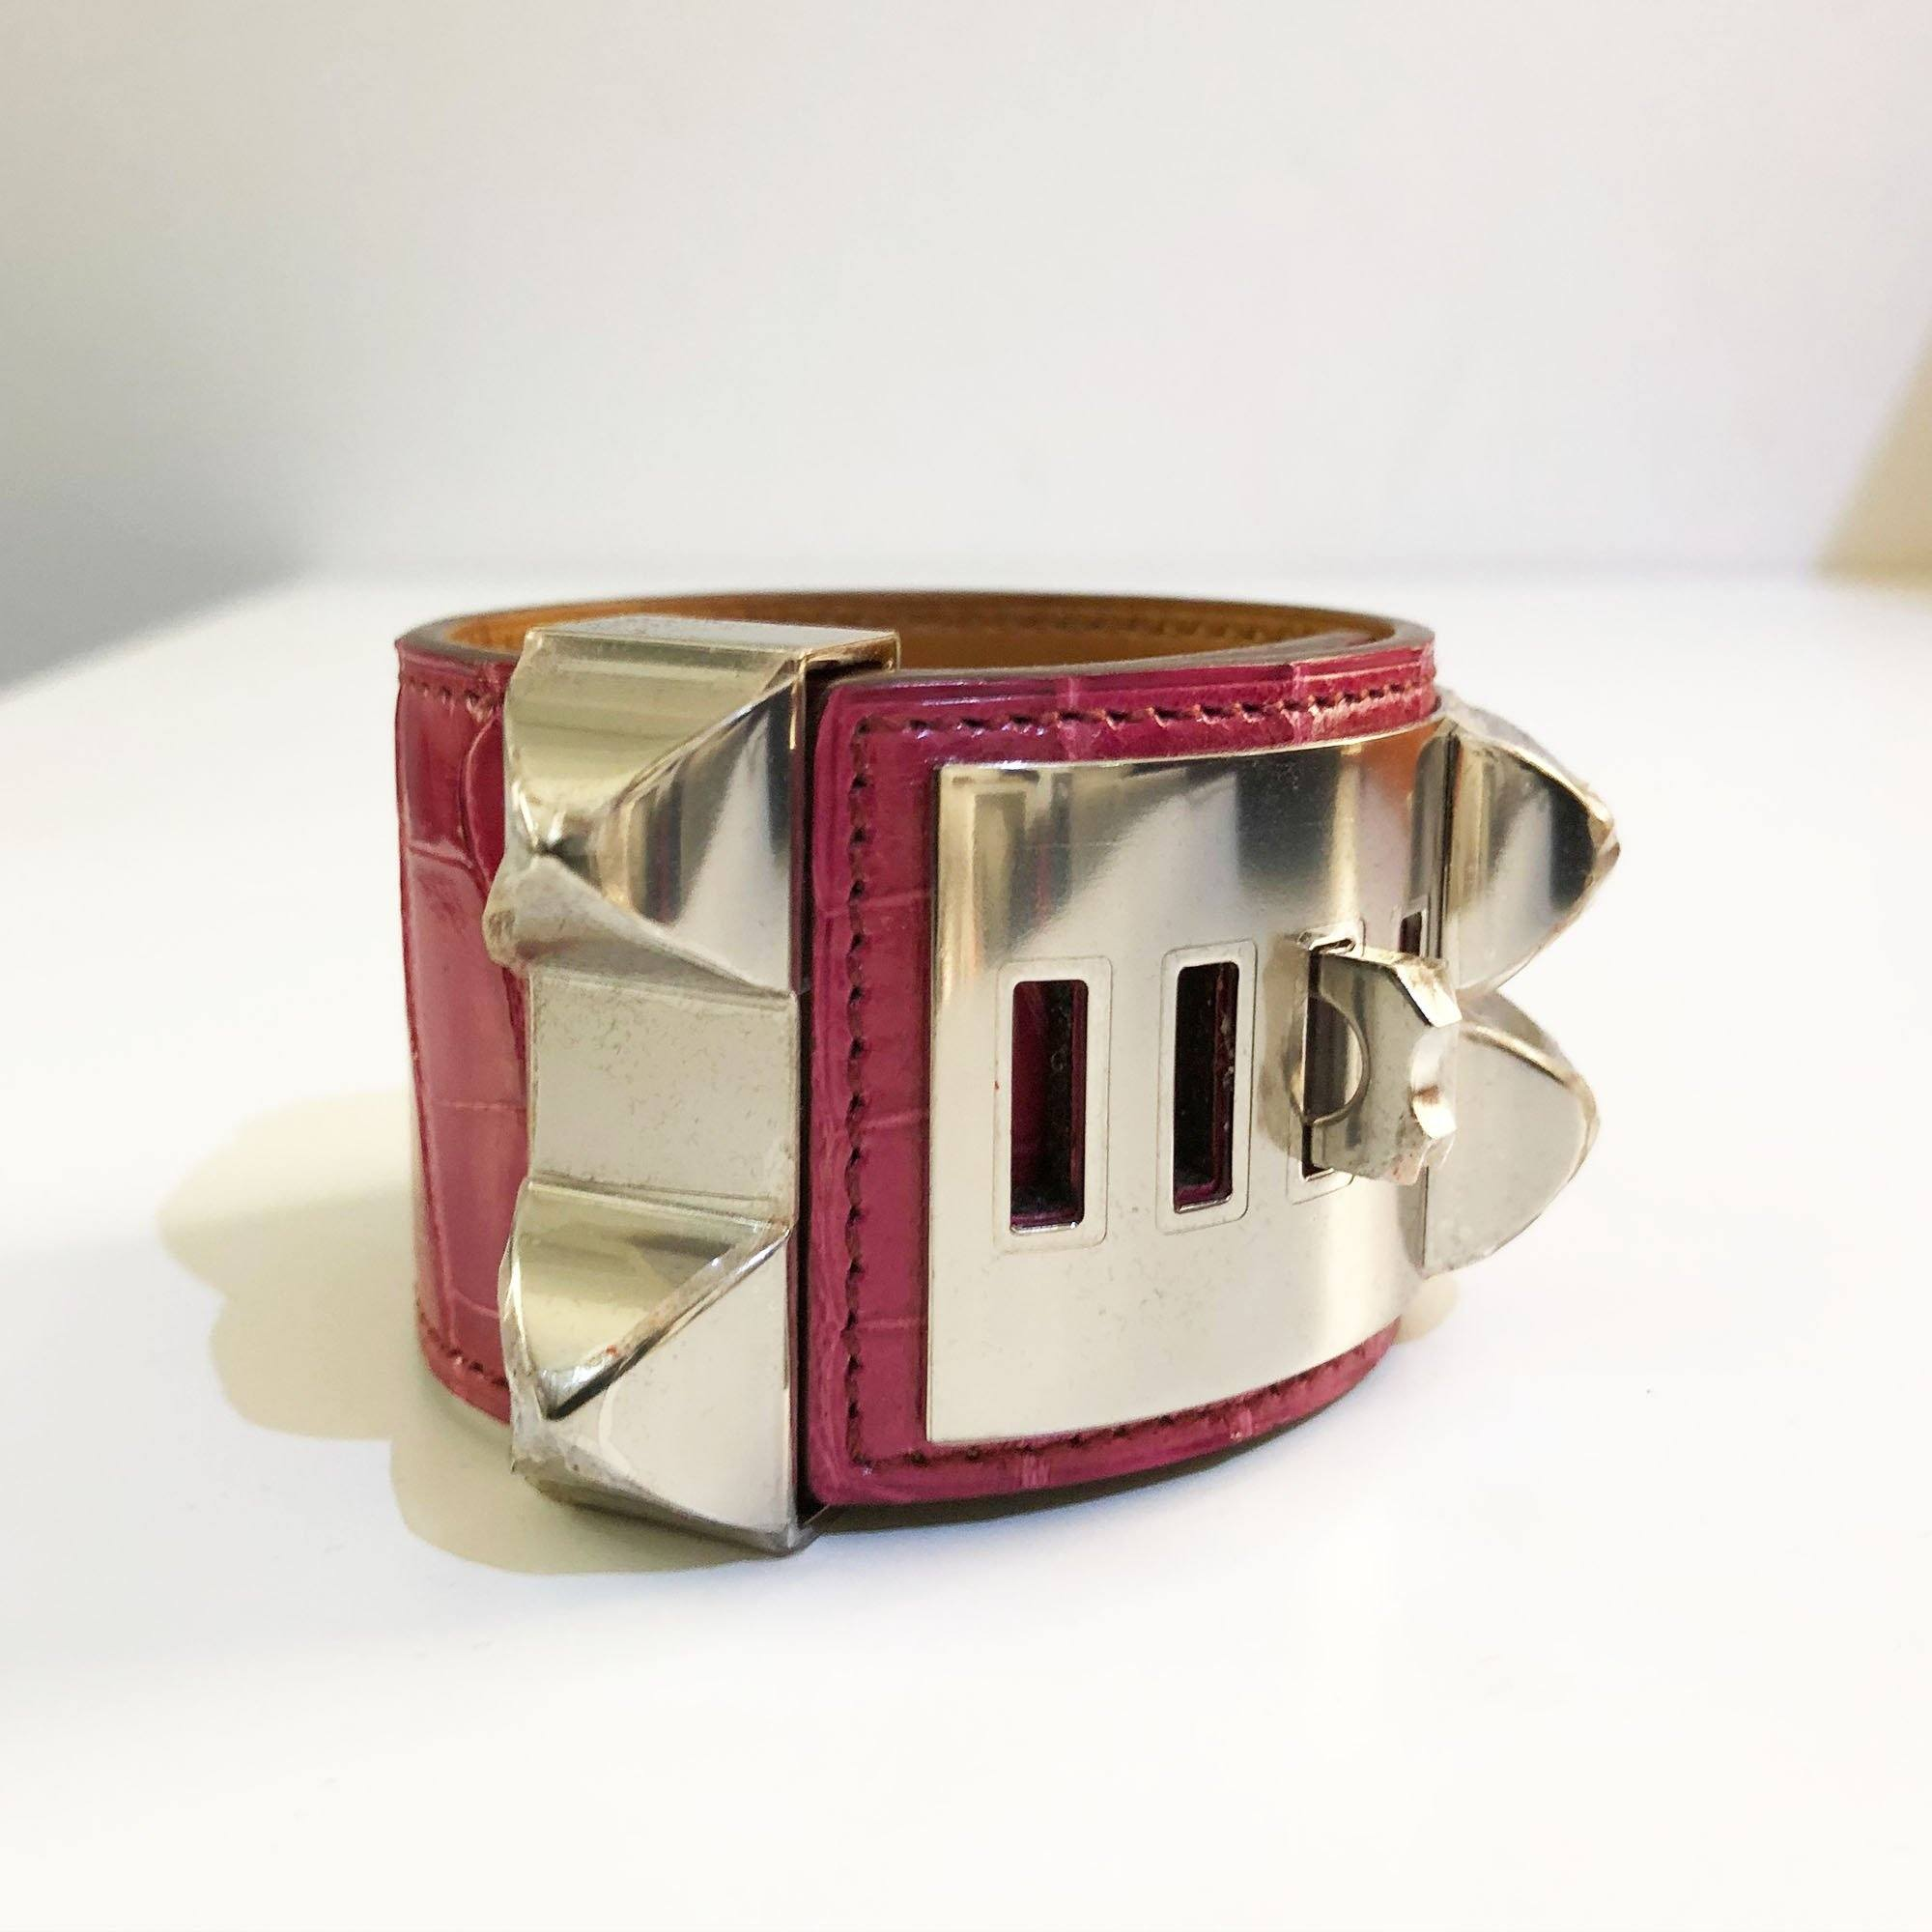 epsom jewelry bracelet casaque collier org herm id brand cuff bracelets plaque v leather luxe at new s hermes de authentique rouge or chien